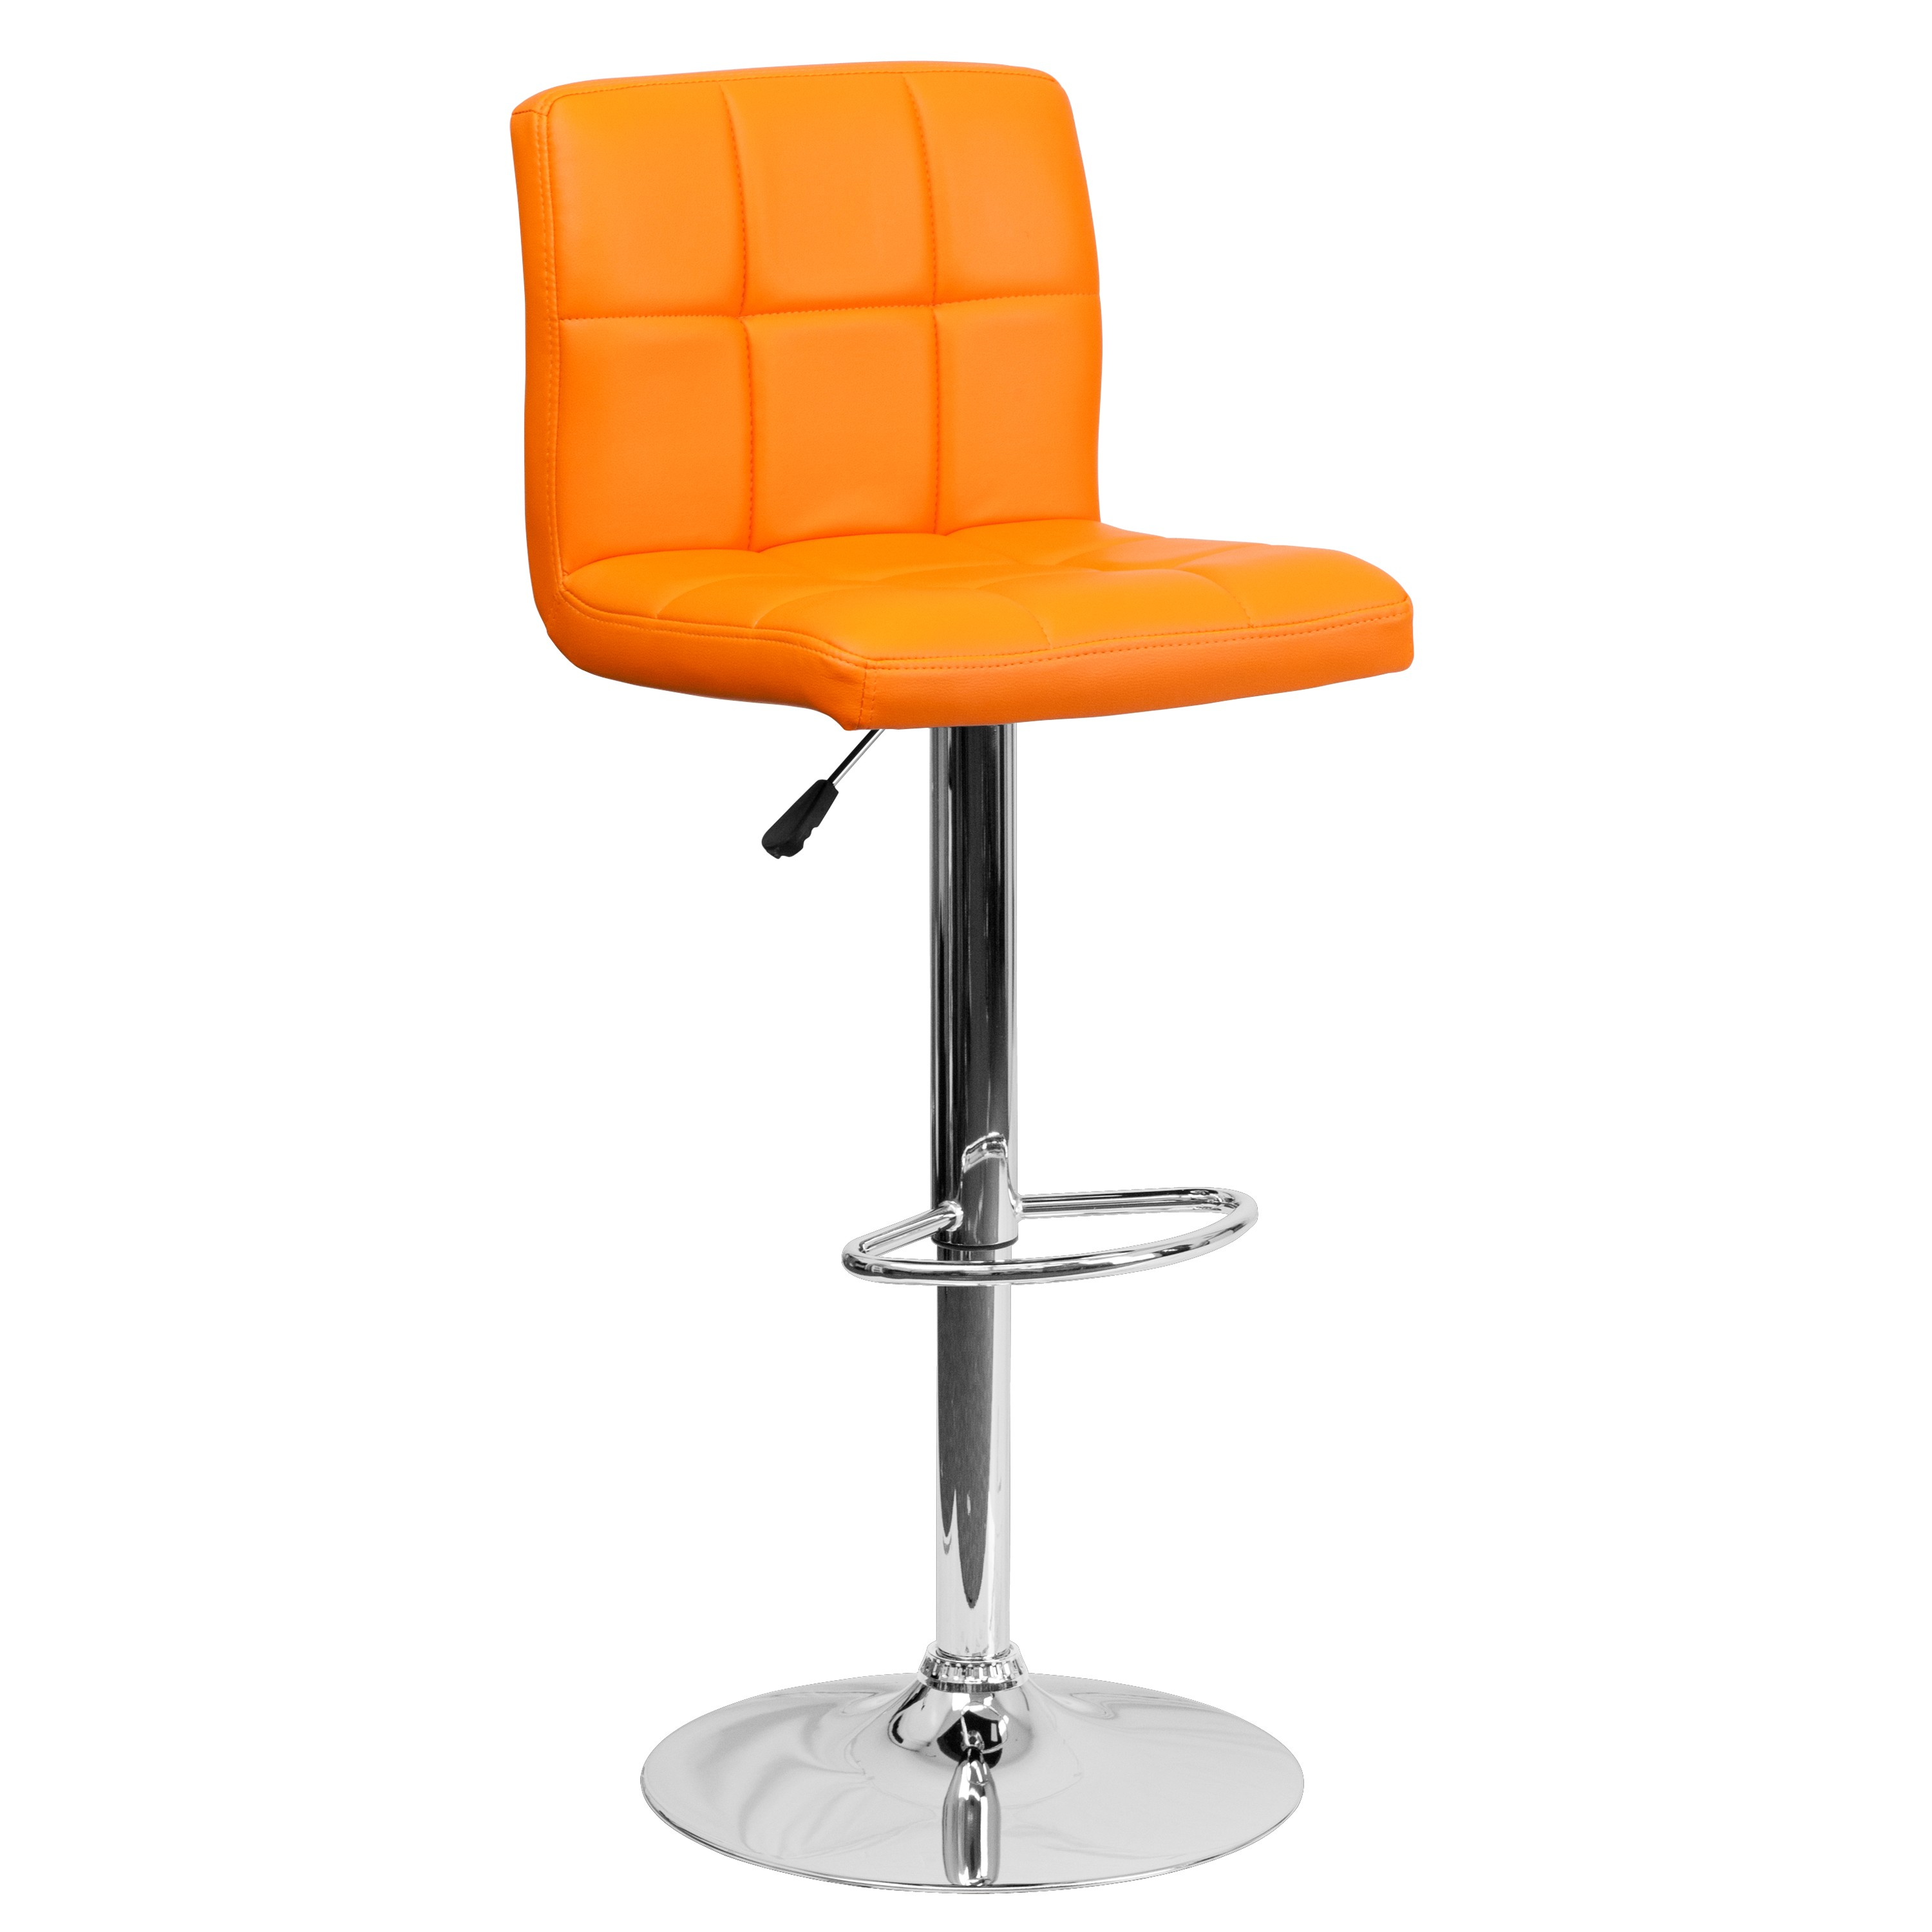 MFO Contemporary Orange Quilted Vinyl Adjustable Height Bar Stool